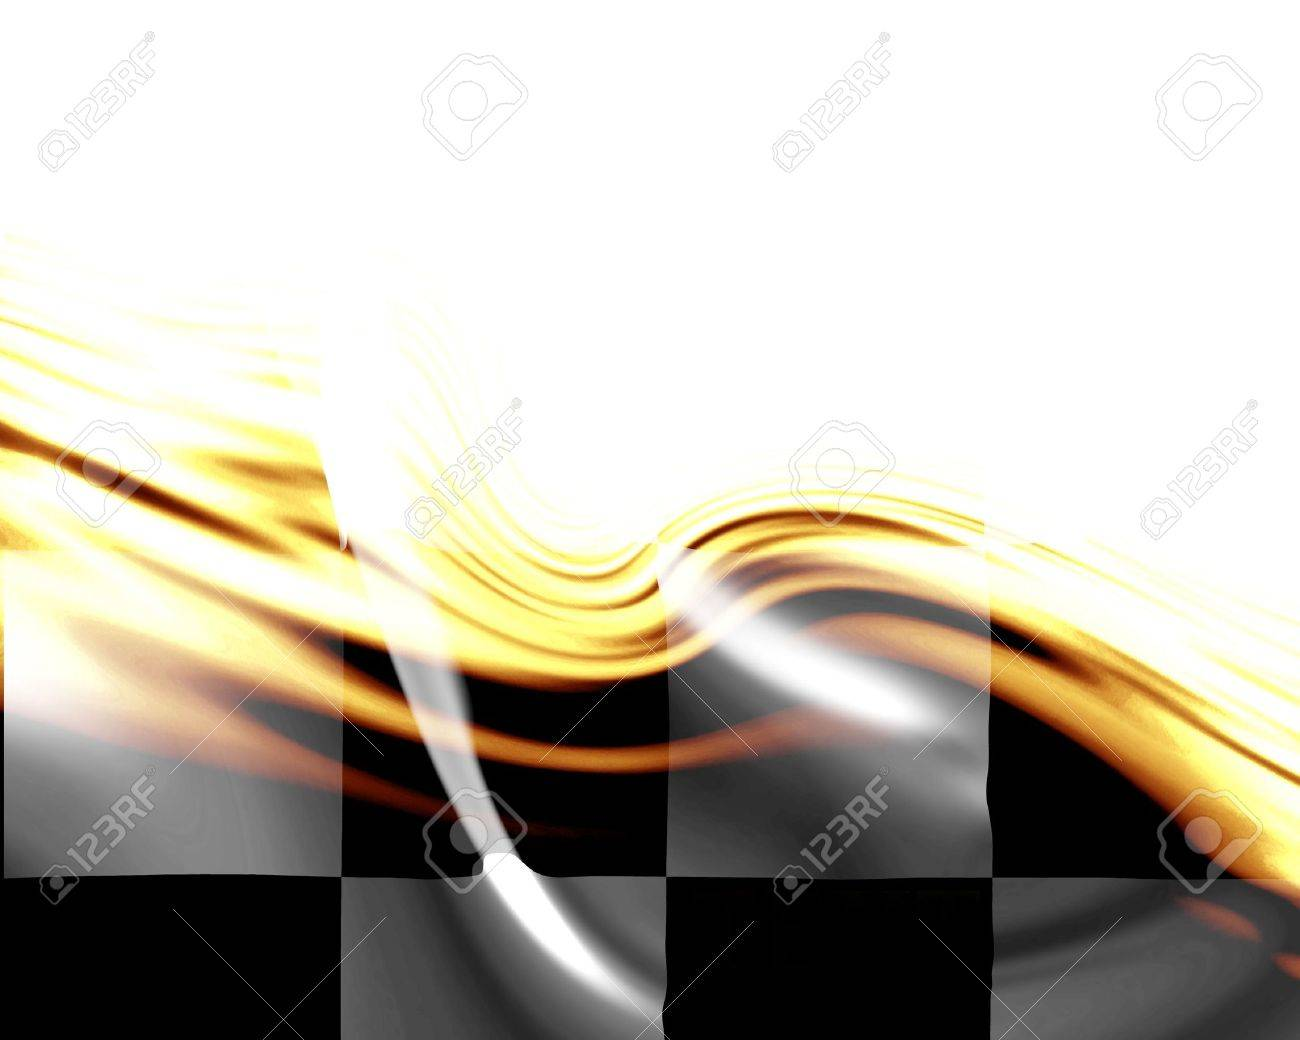 Elegant design with flag center and open spaces Stock Photo - 3195529